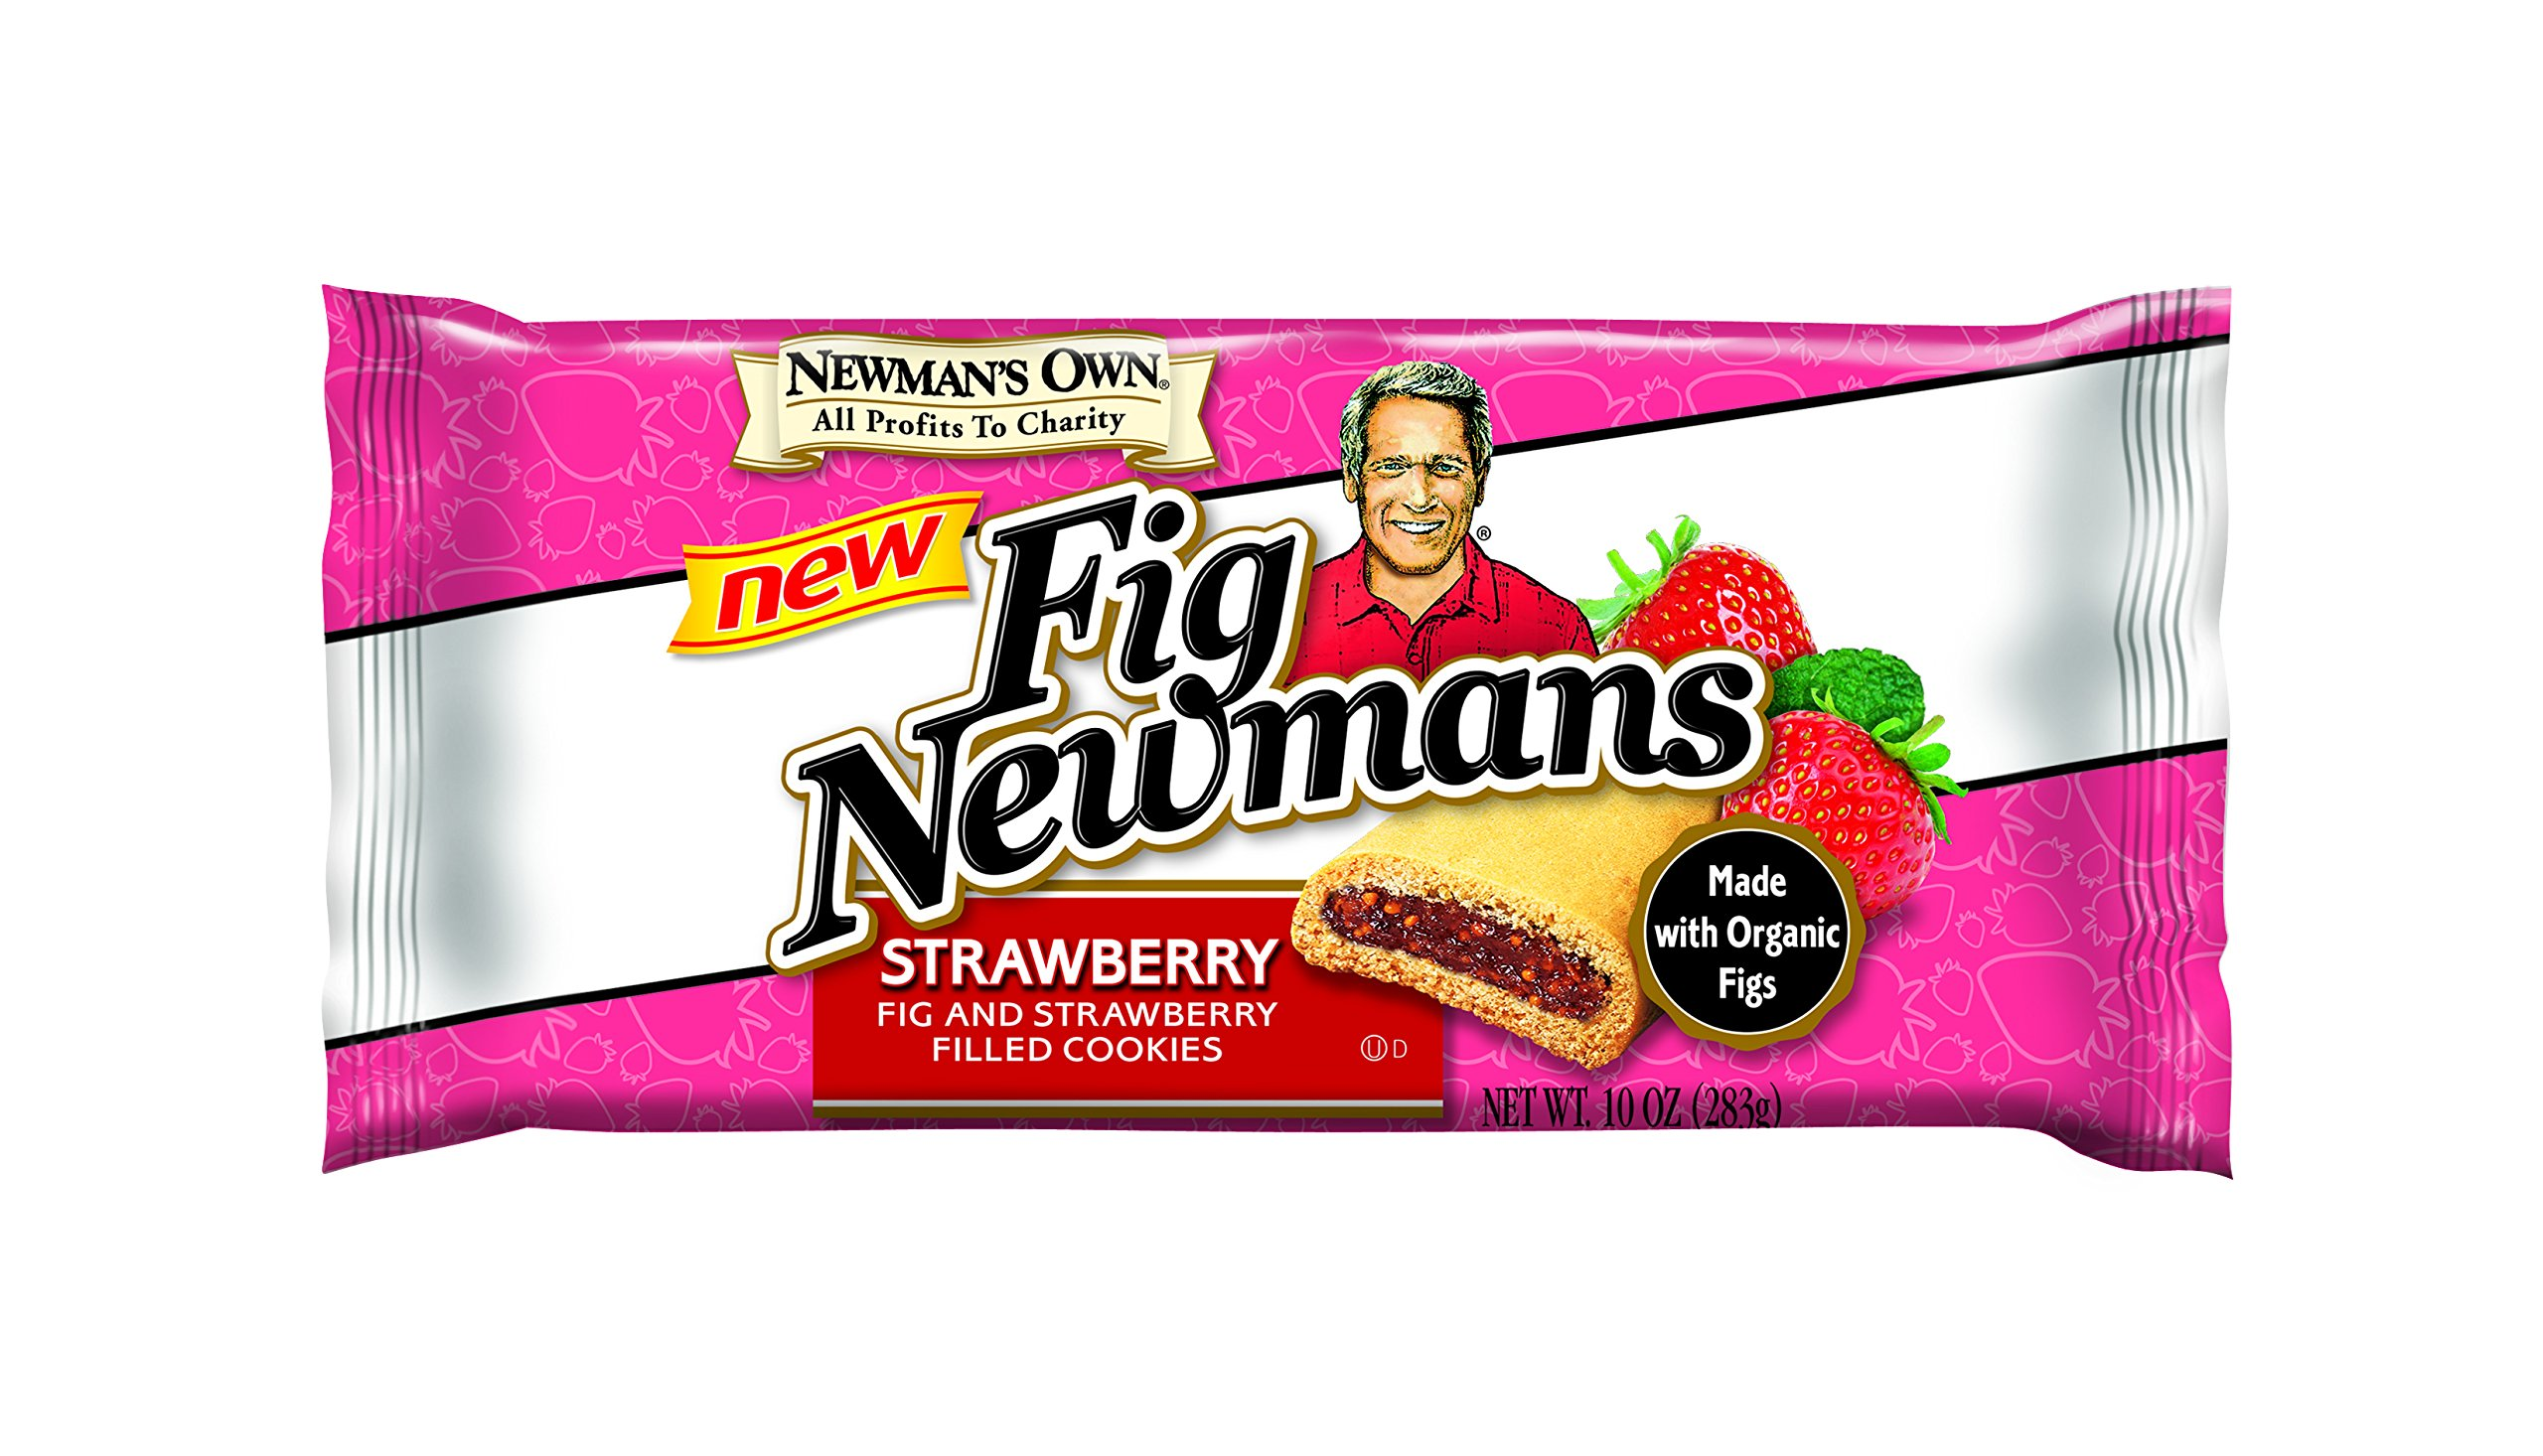 Newman's Own Fig Newmans Strawberry Filled Cookies, 10 Ounce (Pack of 6)